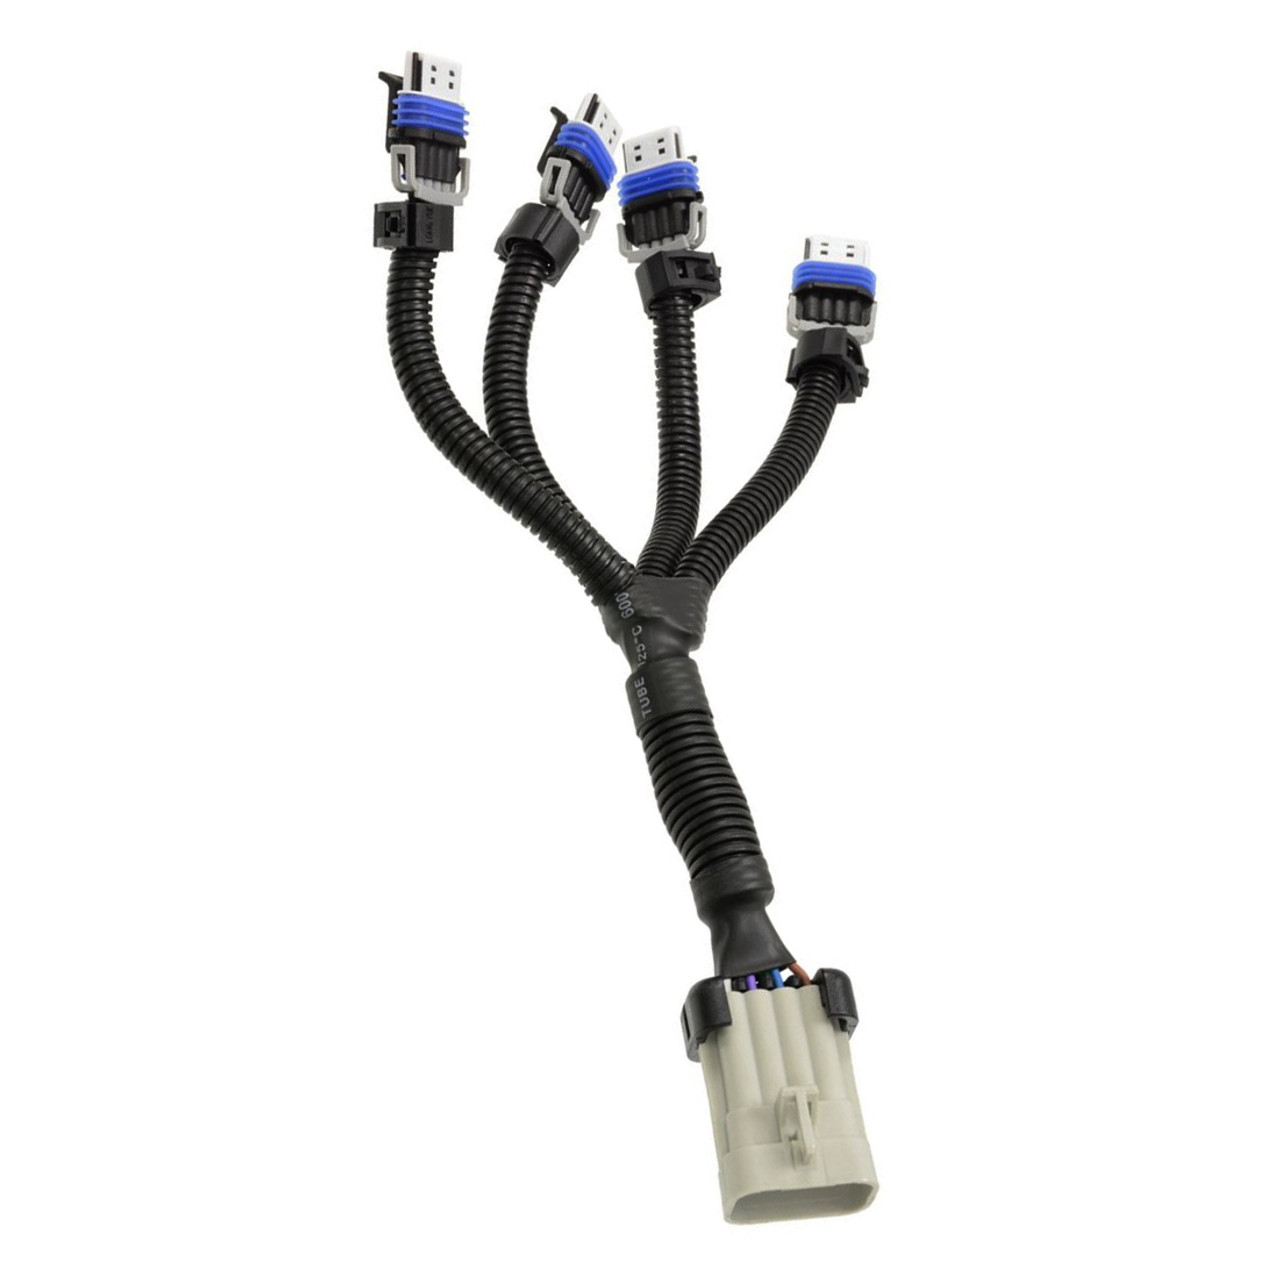 hight resolution of ls2 igc harness relo 1 56305 1462432369 jpg c 2 imbypass on